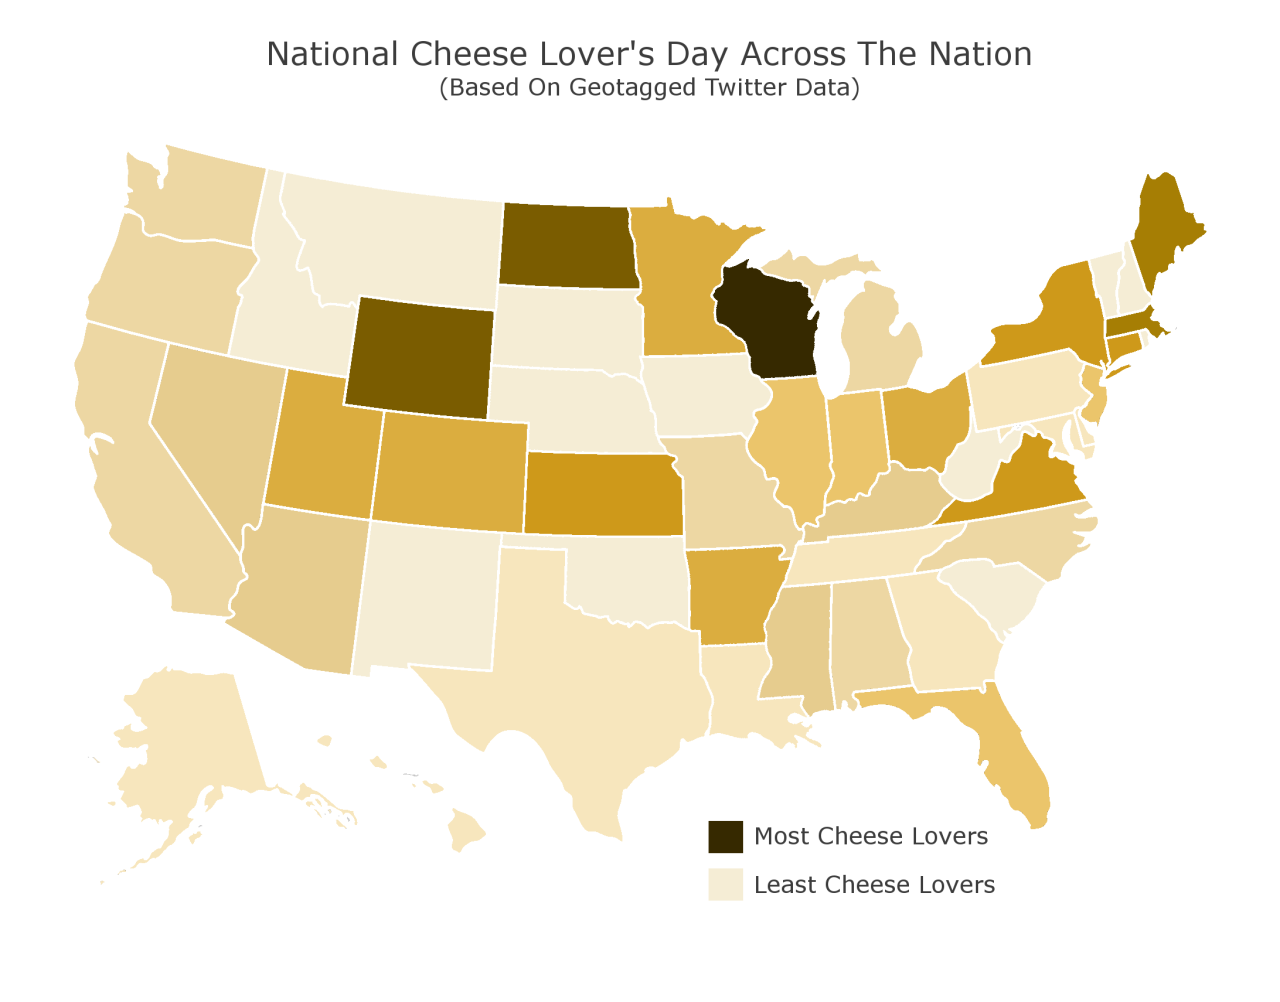 The highest concentration of cheese lovers in the country is in Wisconsin, according to The Daring Kitchen.